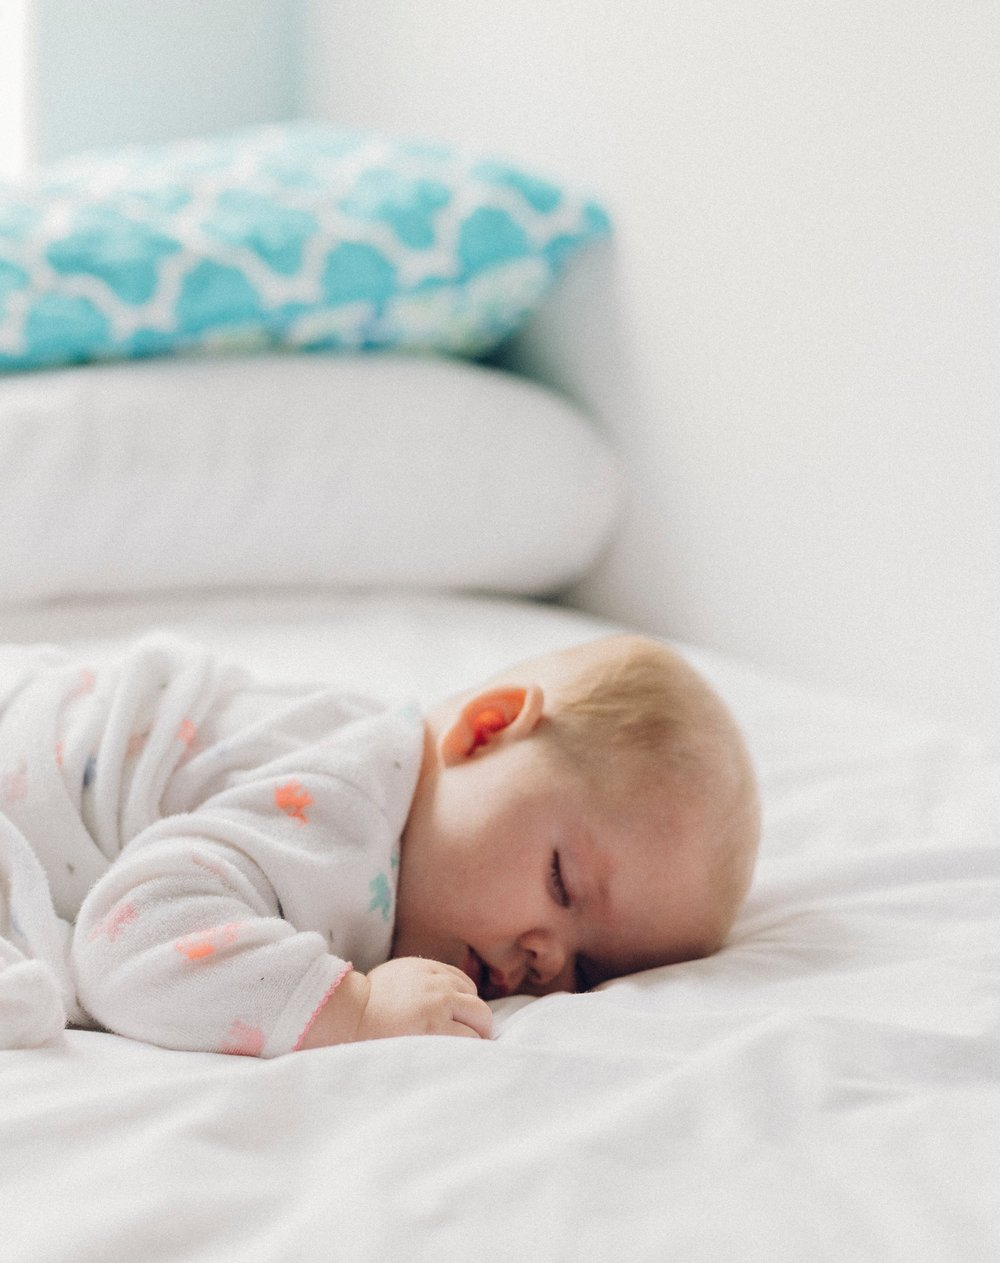 The secret to refreshing sleep is to - wake up naturally after a sustained period of REM. There is wisdom in the old saying that 'one hour's sleep before midnight is worth two after.'